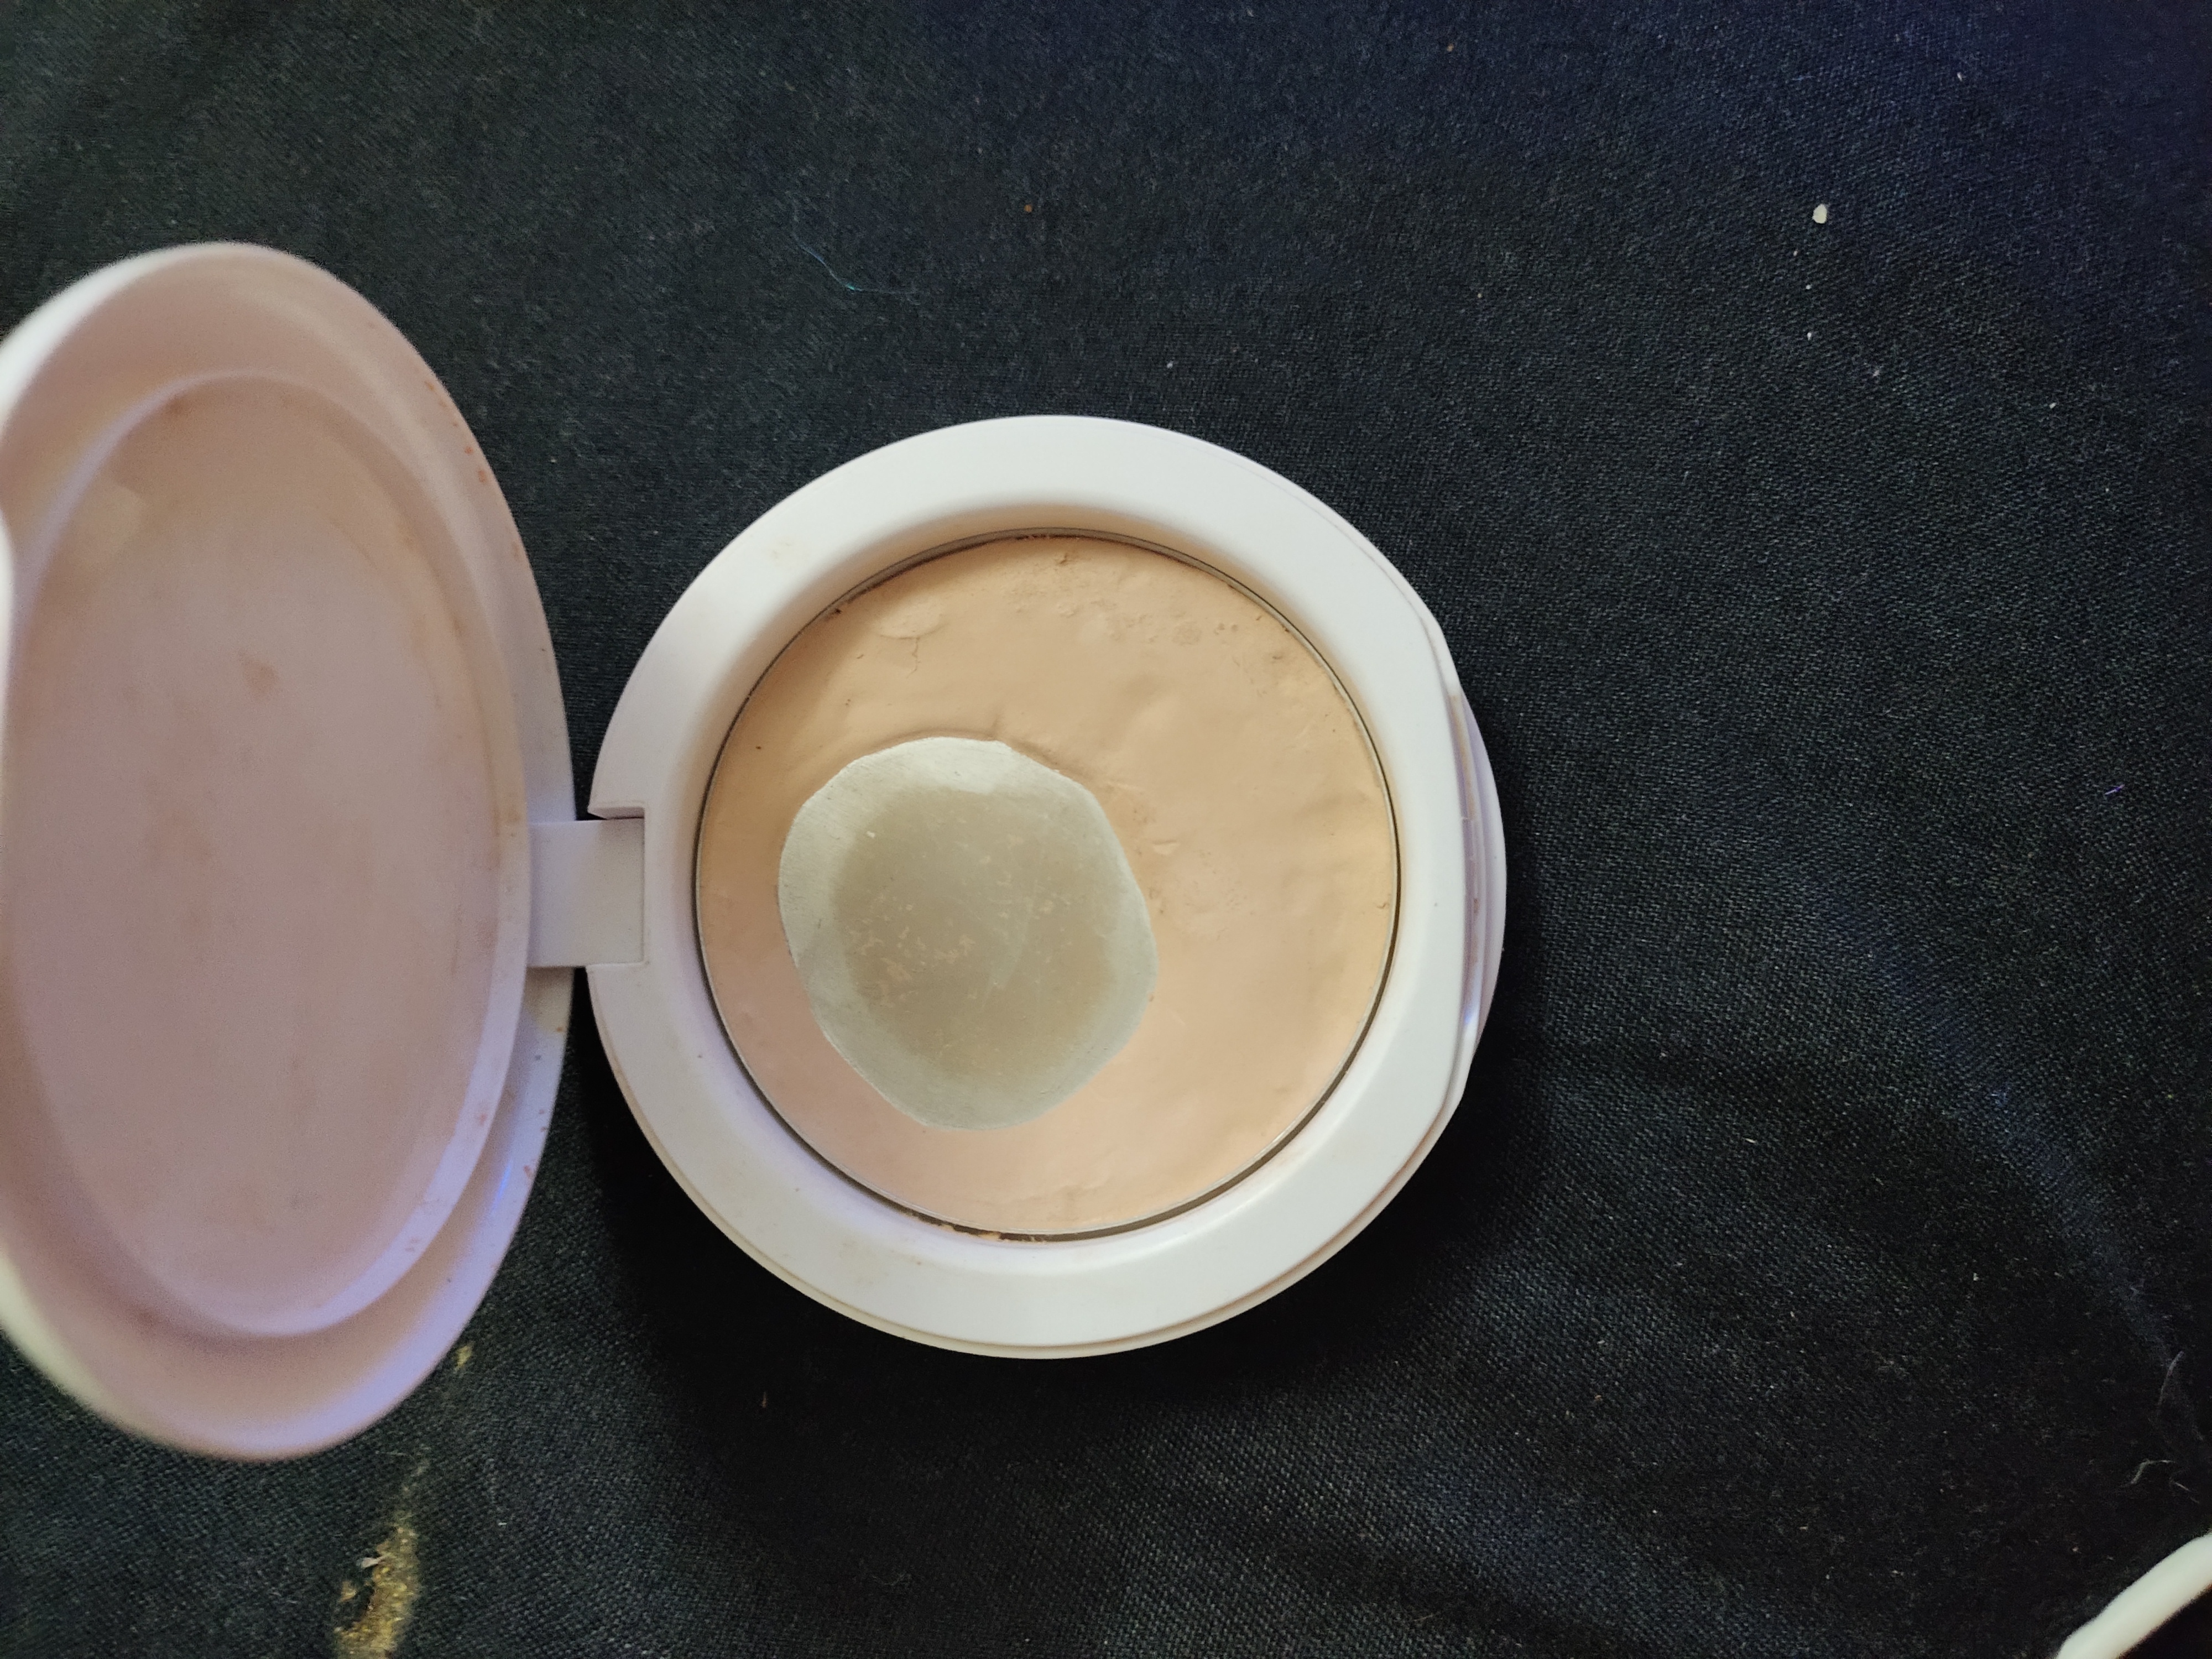 Maybelline New York White Super Fresh Compact-Oil control compact-By ayeshazaiba-1